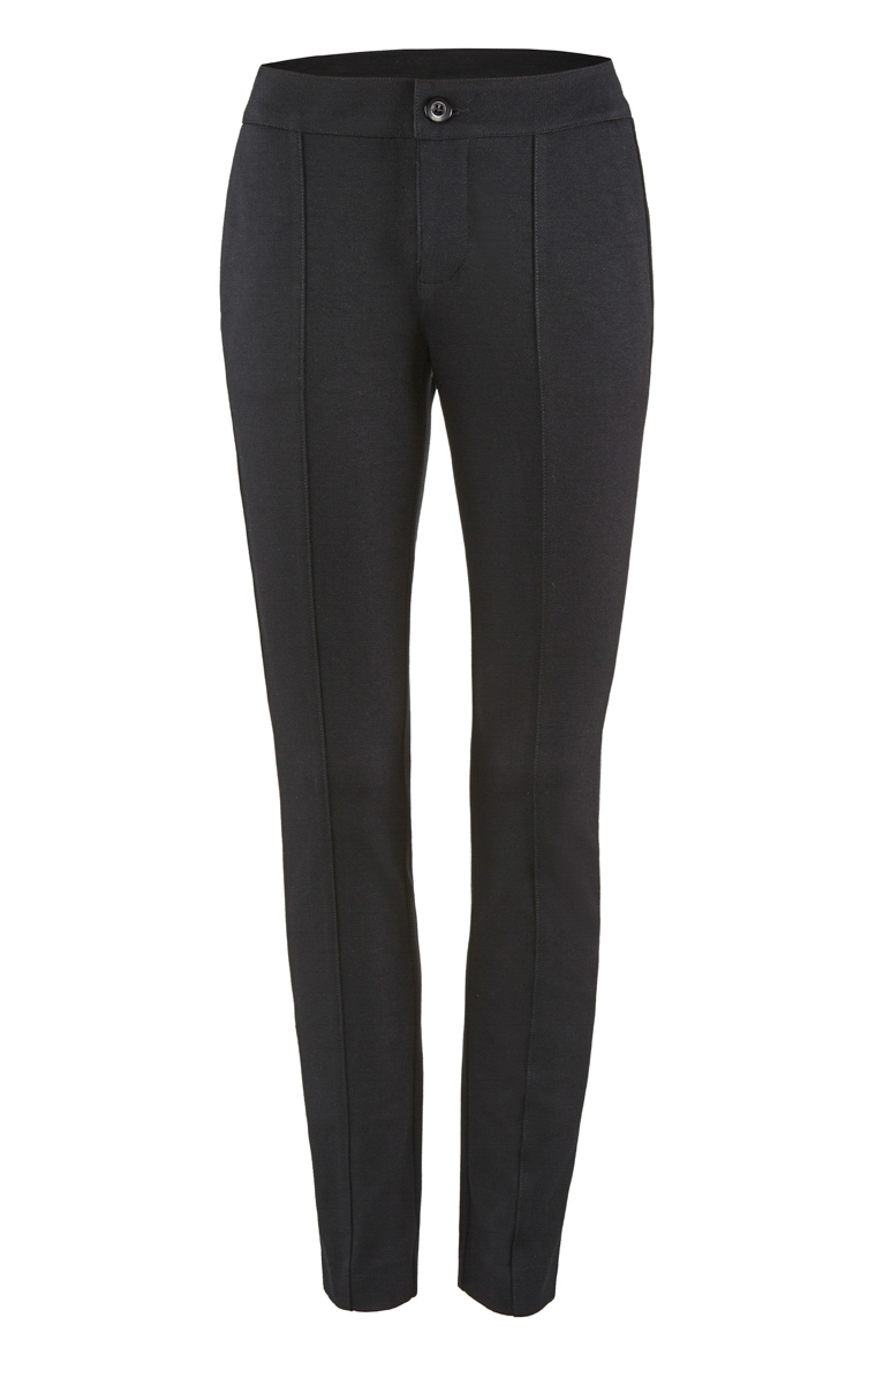 Capote Trouser - Cabi Fall 2015 Collection